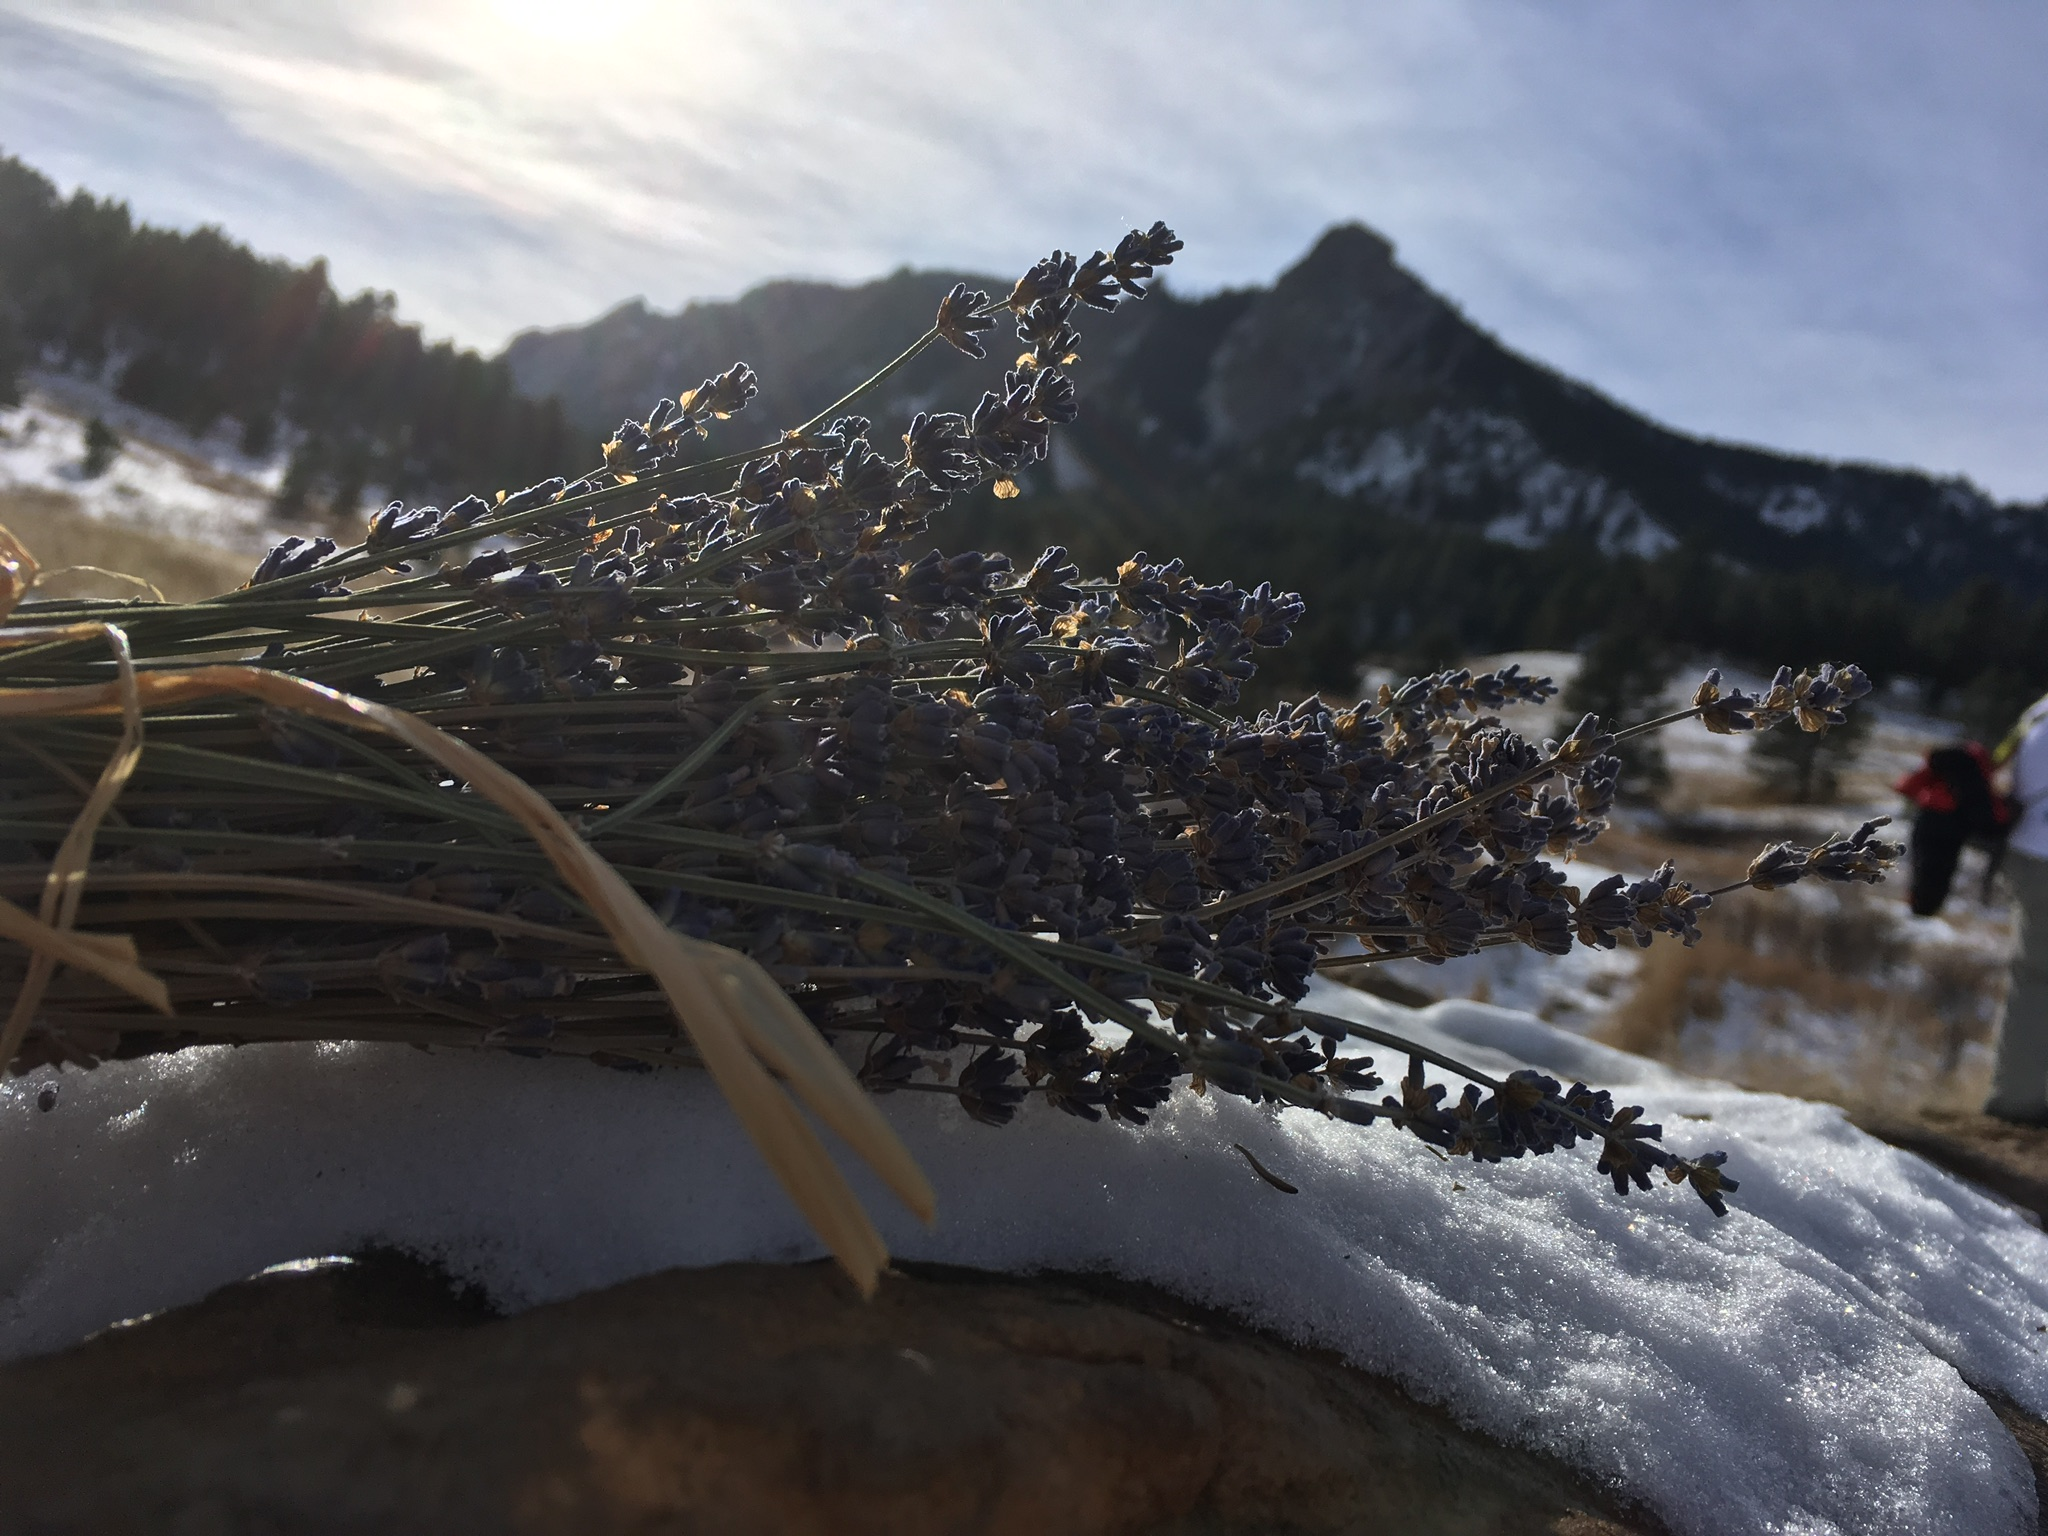 Lavender bundle with mountain in background